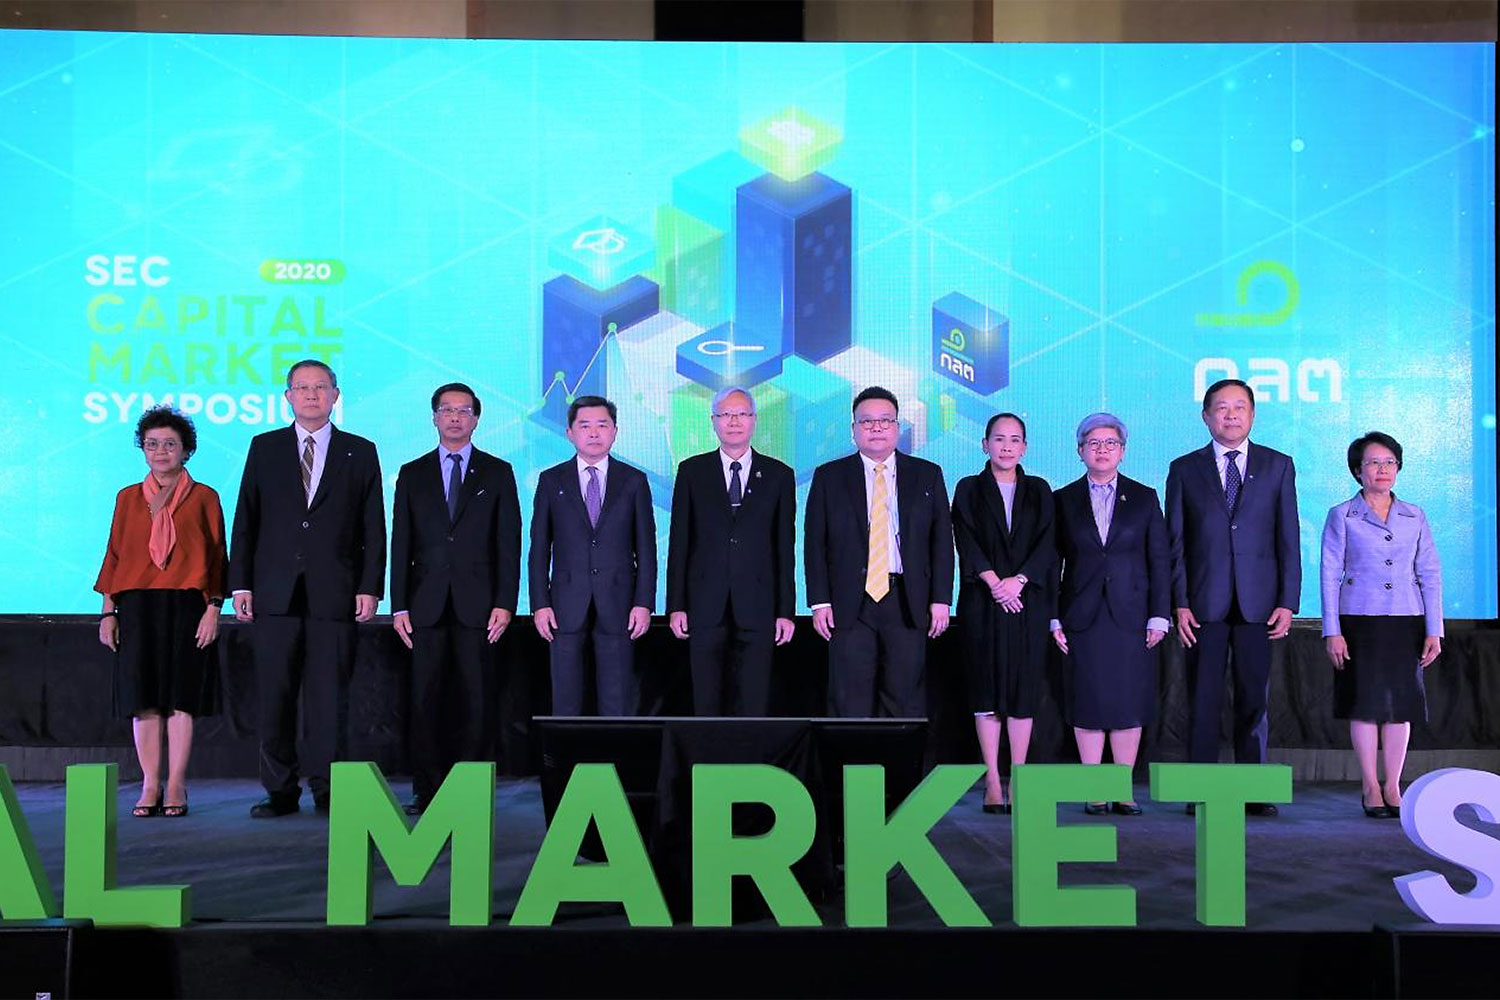 Pichit Akrathit, chairman of the Securities and Exchange Commission, centre left, and Ruenvadee Suwanmongkol, SEC secretary-general, third right, along with senior executives at the opening ceremony of the SEC Capital Market Symposium 2020.